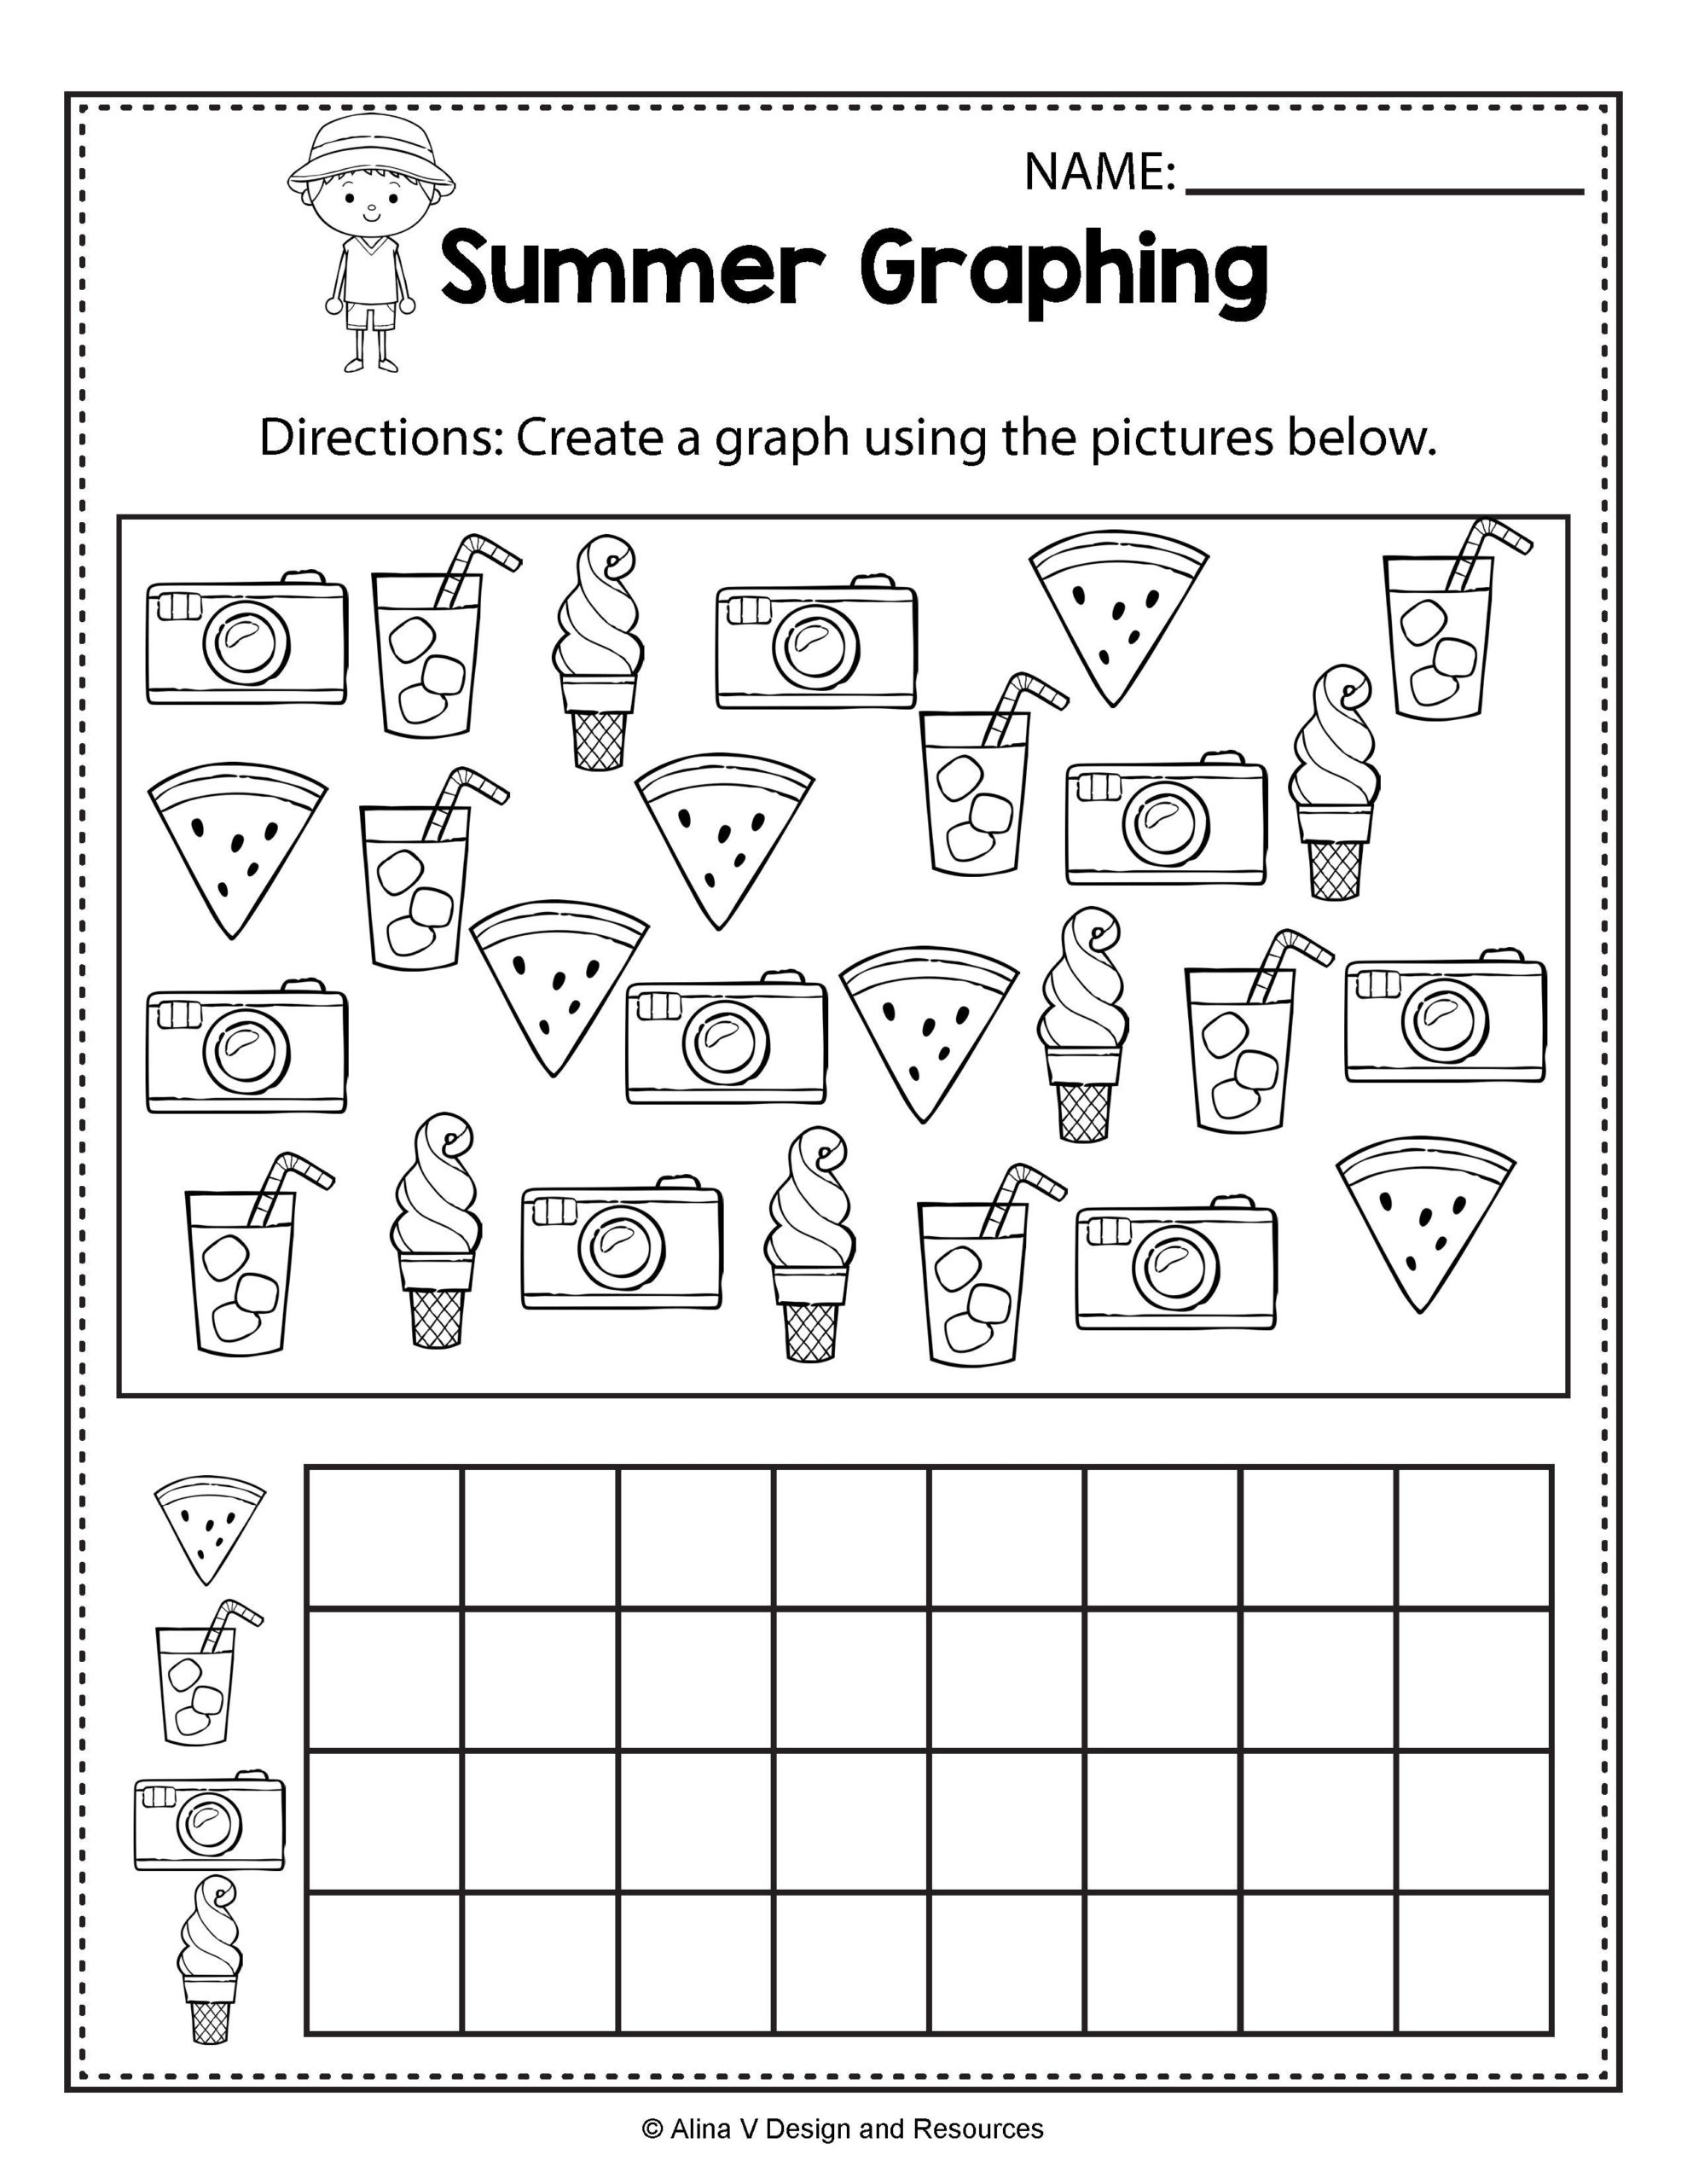 Summer Graphing - Summer Math Worksheets And Activities For